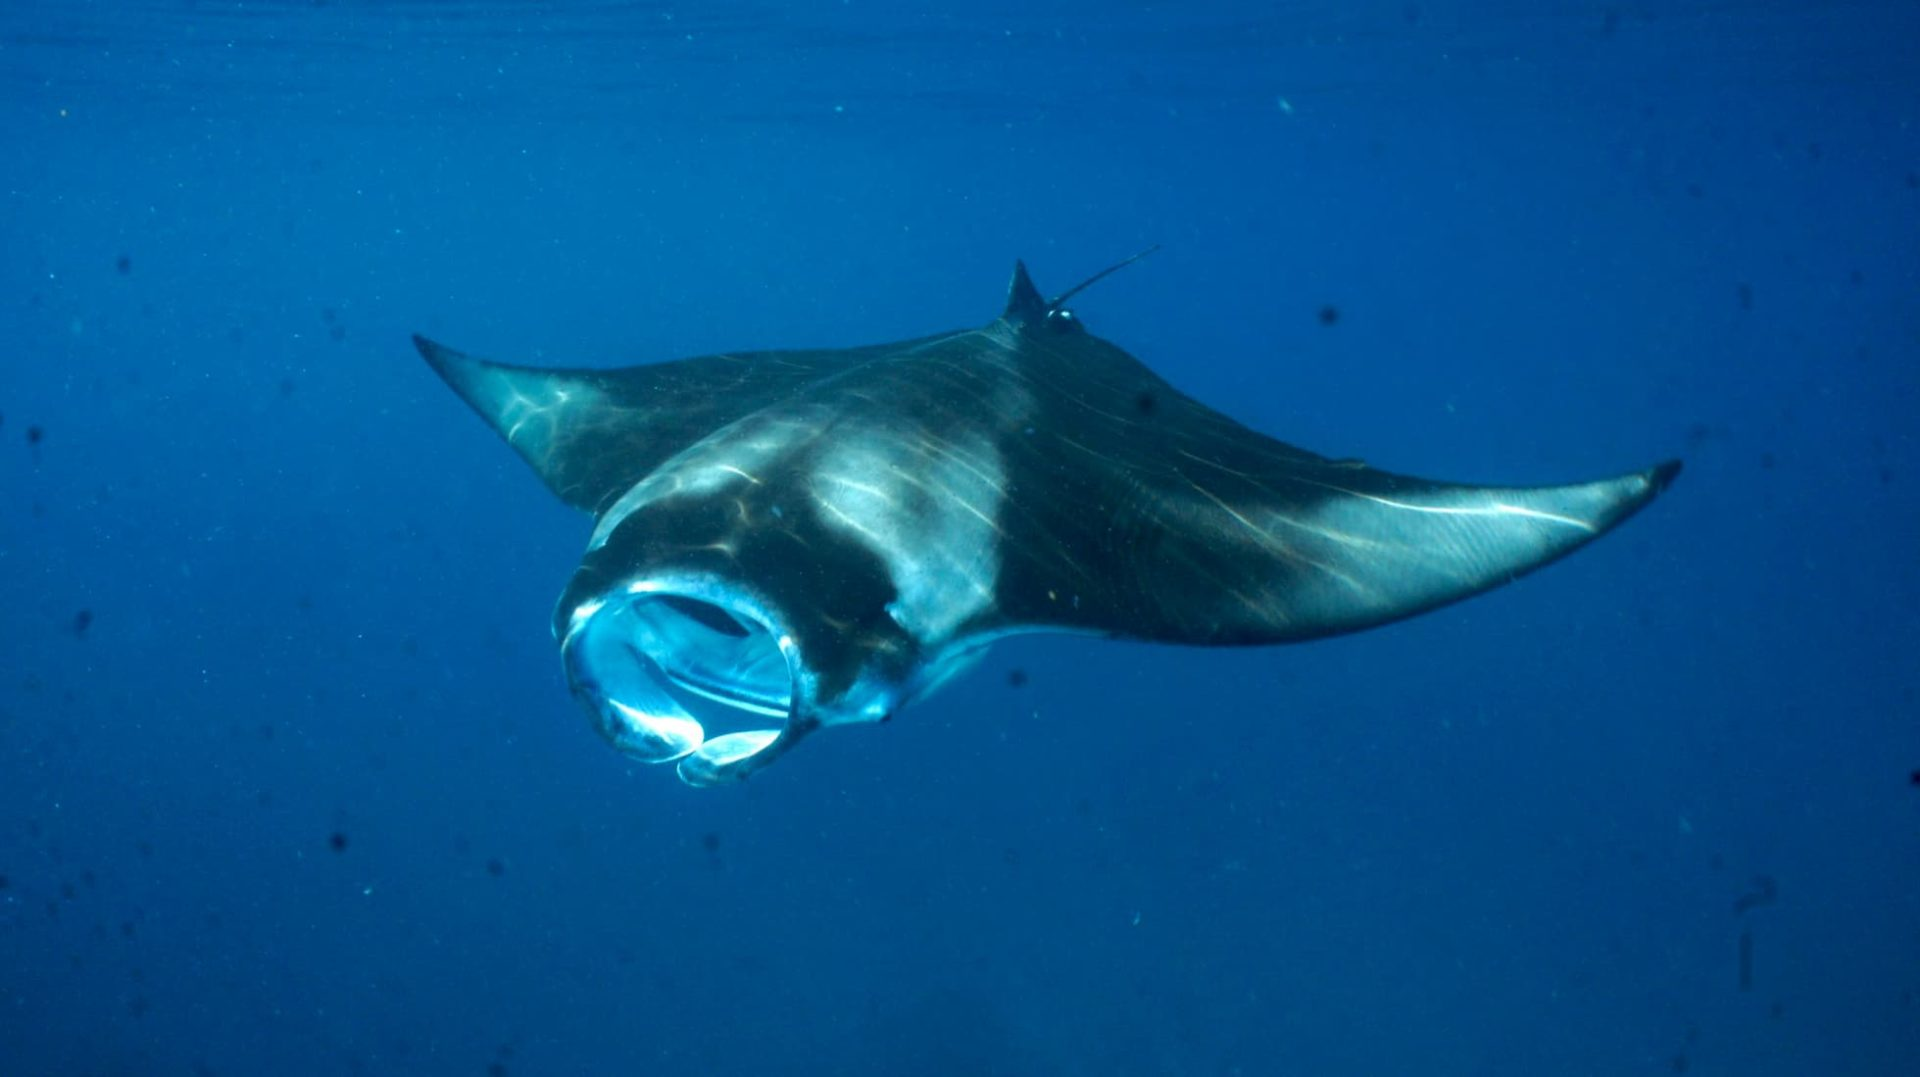 harks, rays and skates, and chimaeras – are now threatened with extinction.